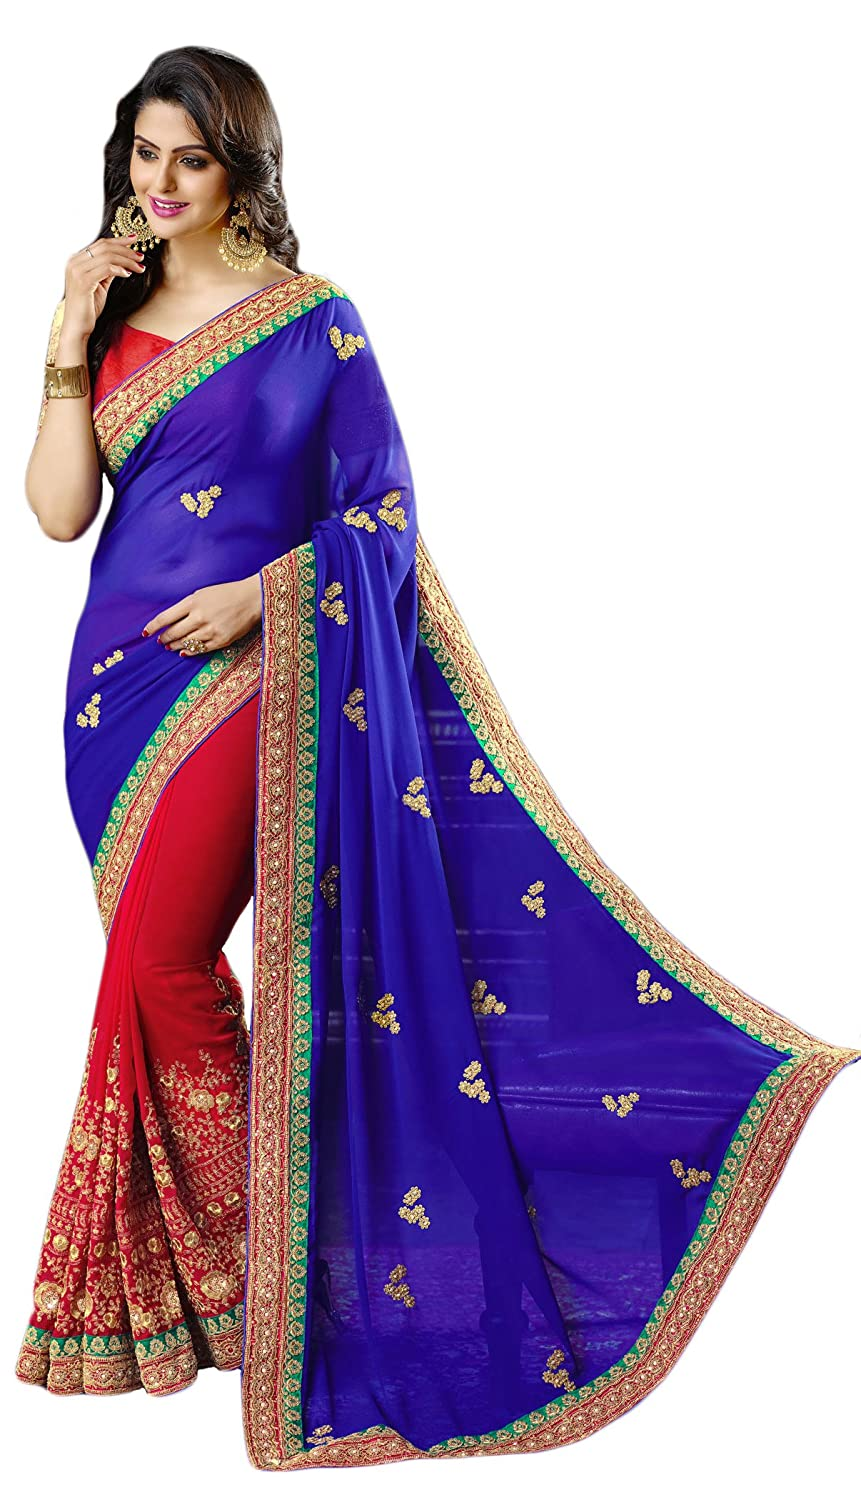 c17452907479fe Right Enterprise Women's Georgette Saree Zari, Resham Embroidery,  Embroidery Butta With Stone Work And Lace Border Work With Blouse (Blue &  Maroon): ...